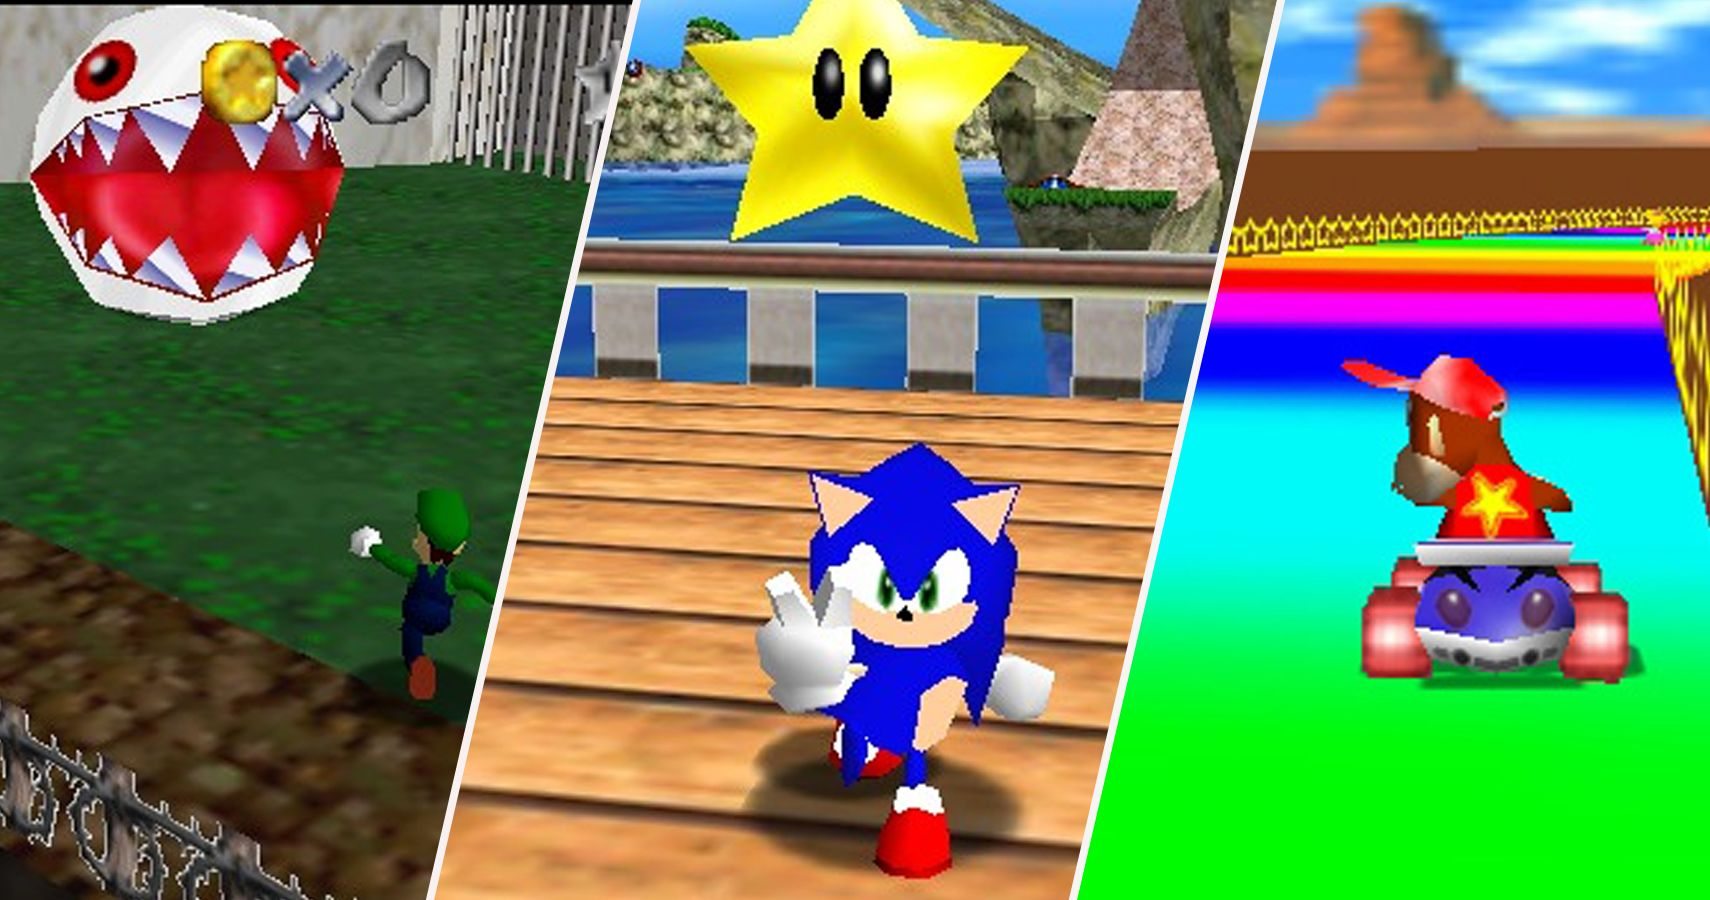 25 Nintendo 64 Hacks And Deleted Things That Old School Fans